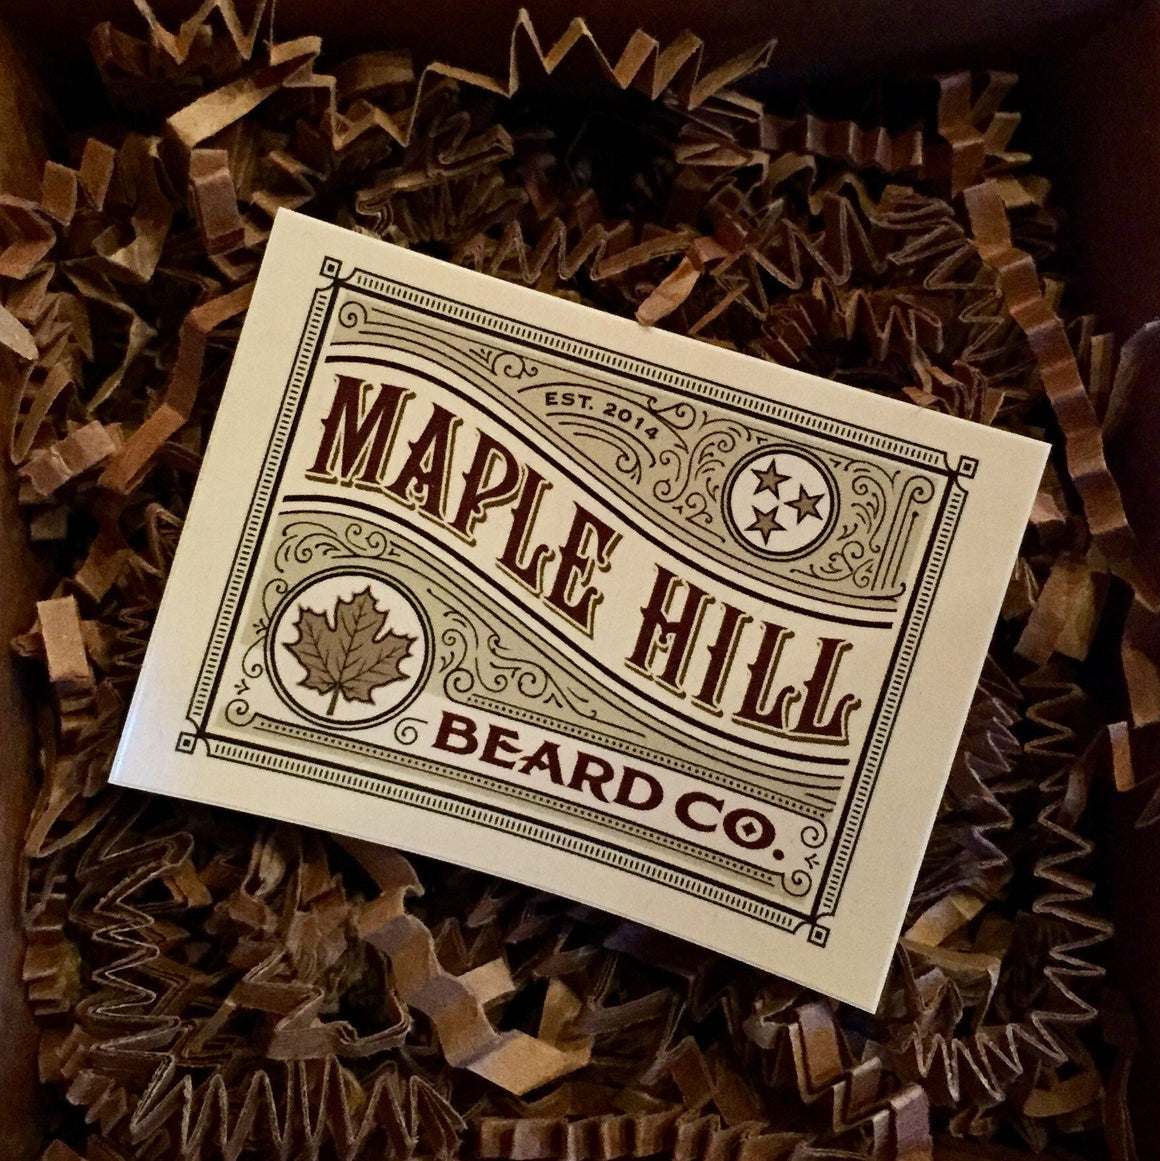 Accessories - Maple Hill Beard Co. Sticker